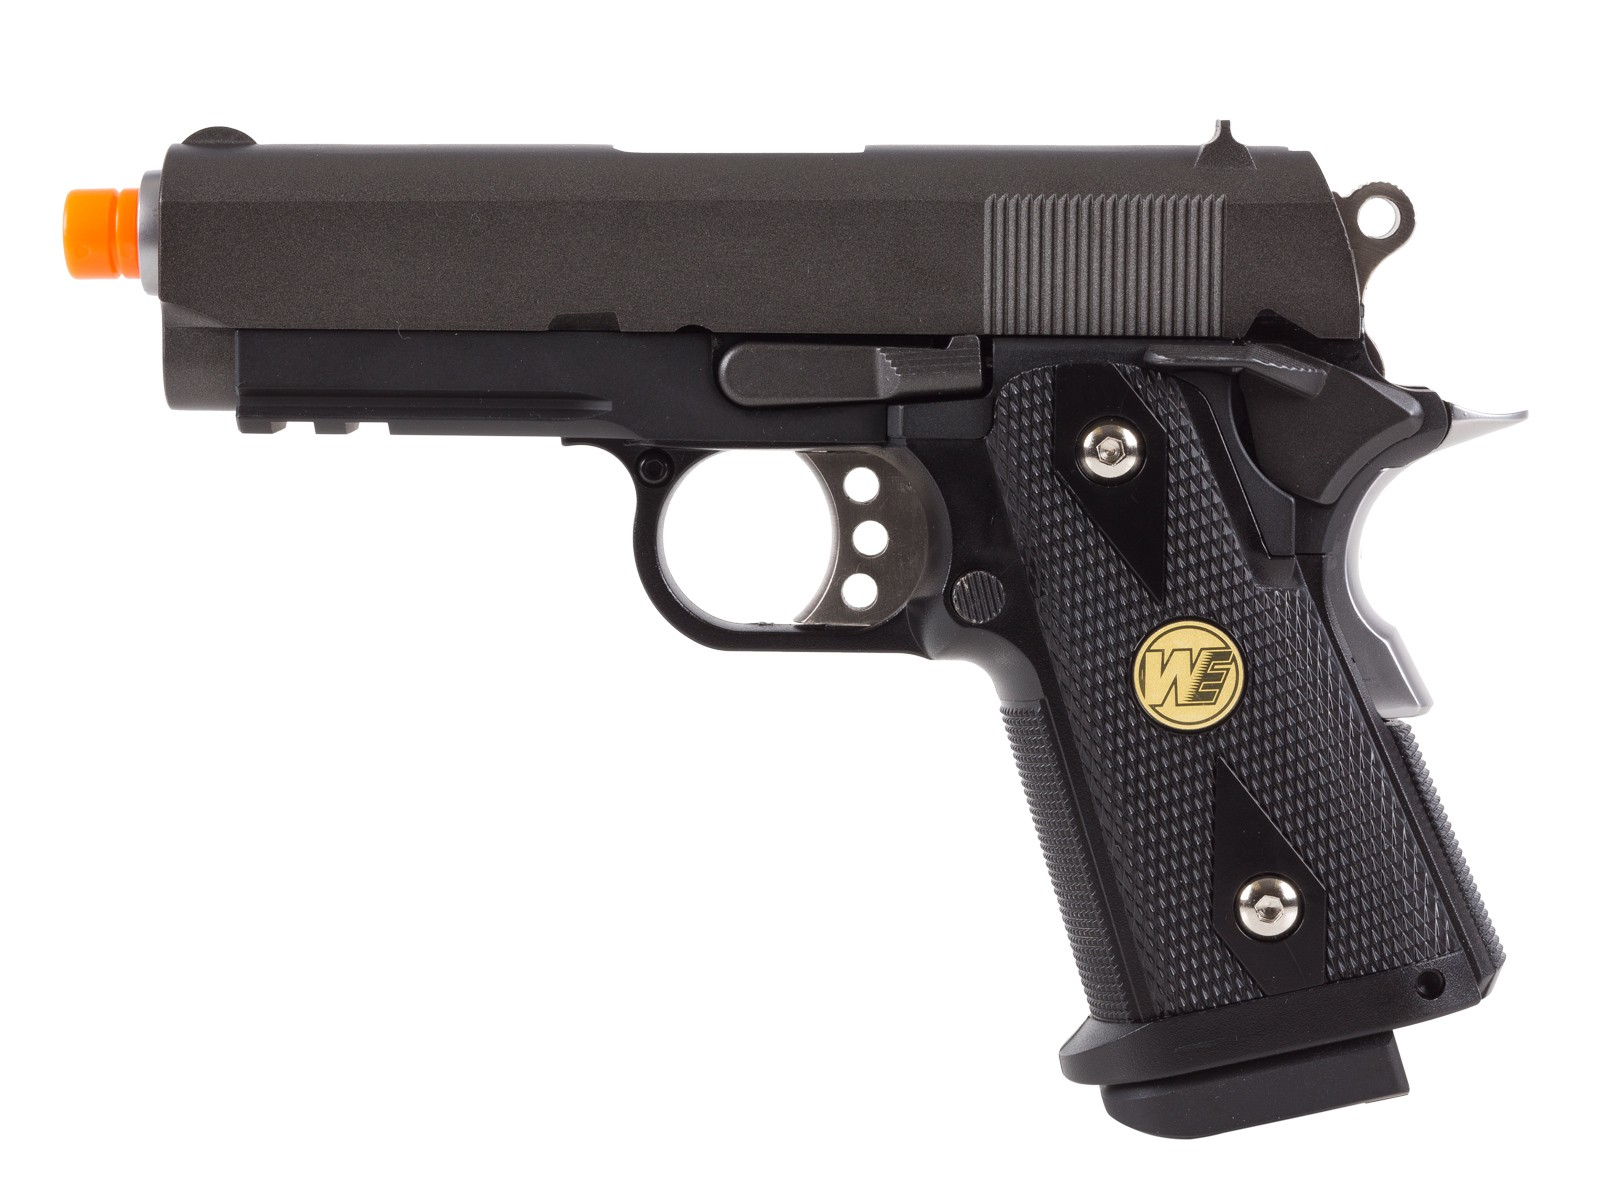 WE_Baby_HiCapa_38_Airsoft_Pistol_Black_6mm